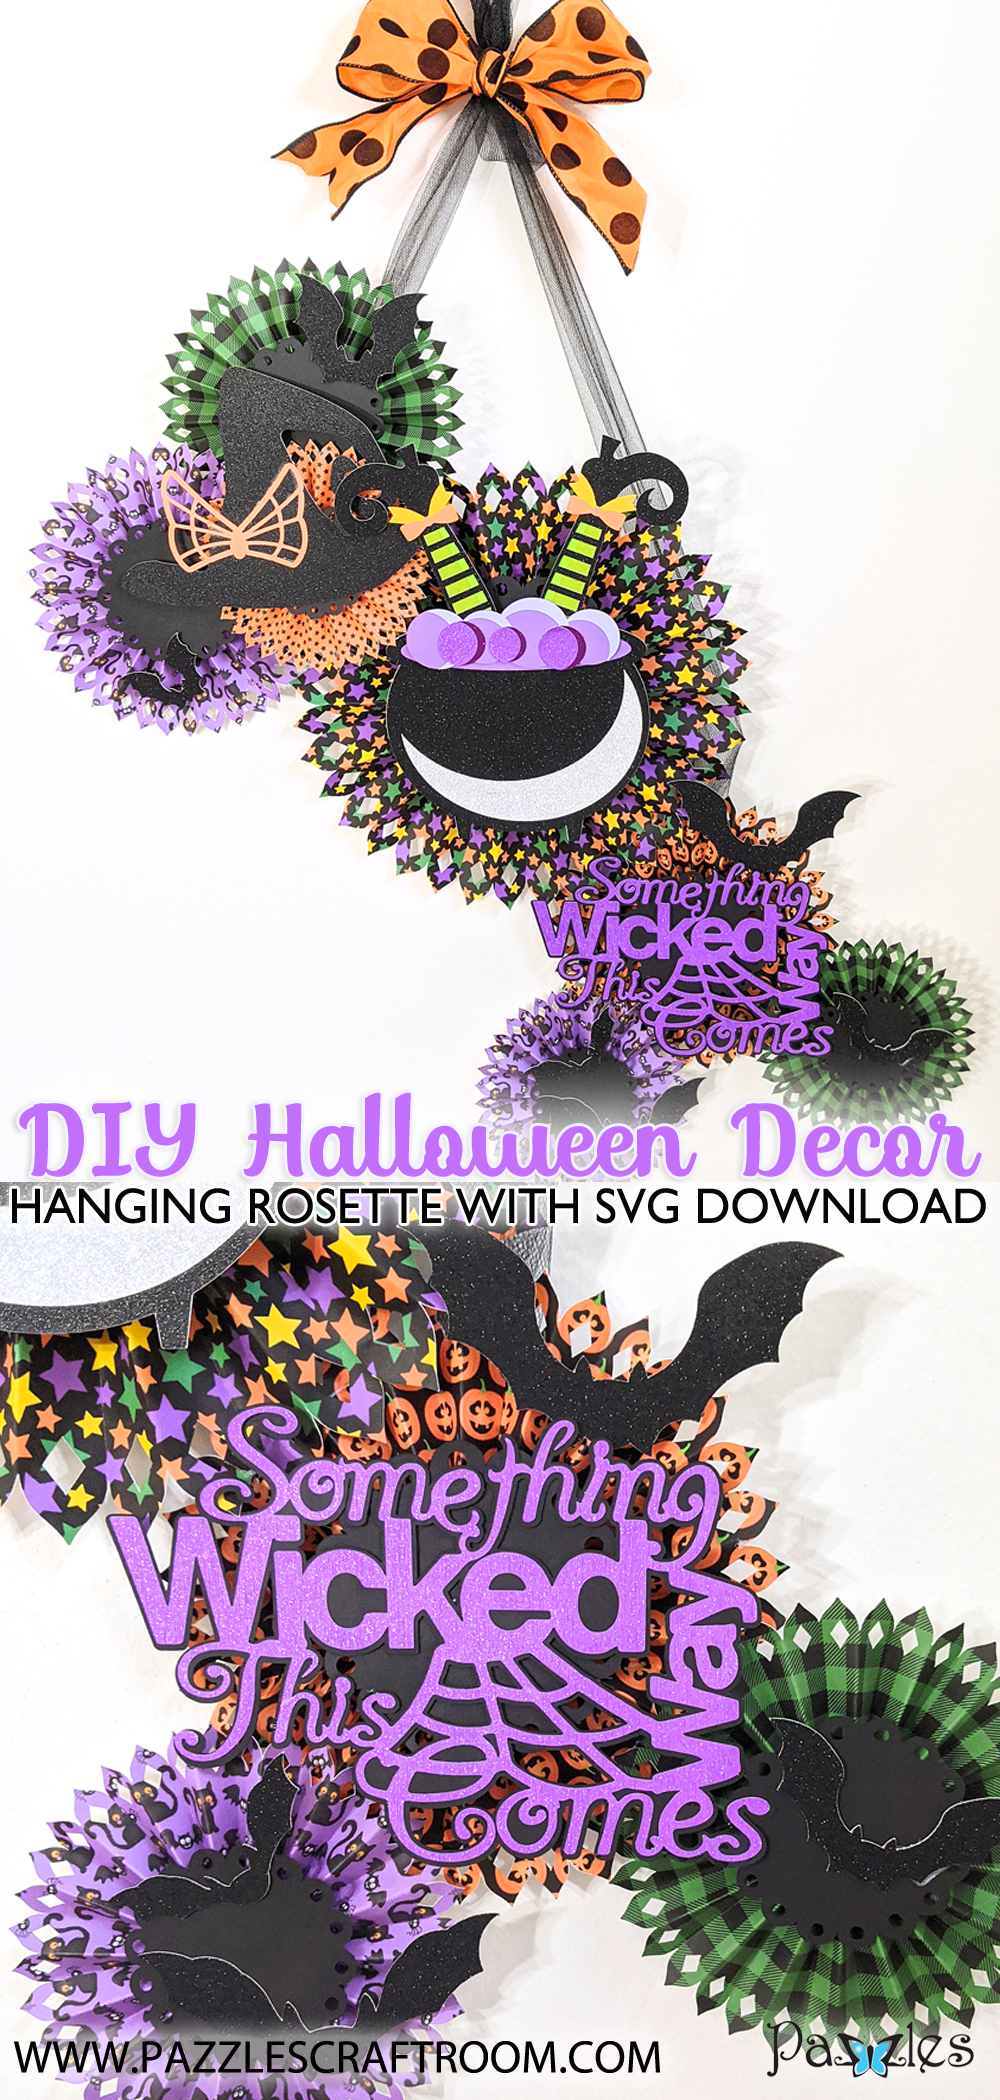 Pazzles DIY Halloween Rosette Hanging Decor with instant SVG download. Compatible with all major electronic cutters including Pazzles Inspiration, Cricut, and Silhouette Cameo. Design by Monica Martinez.